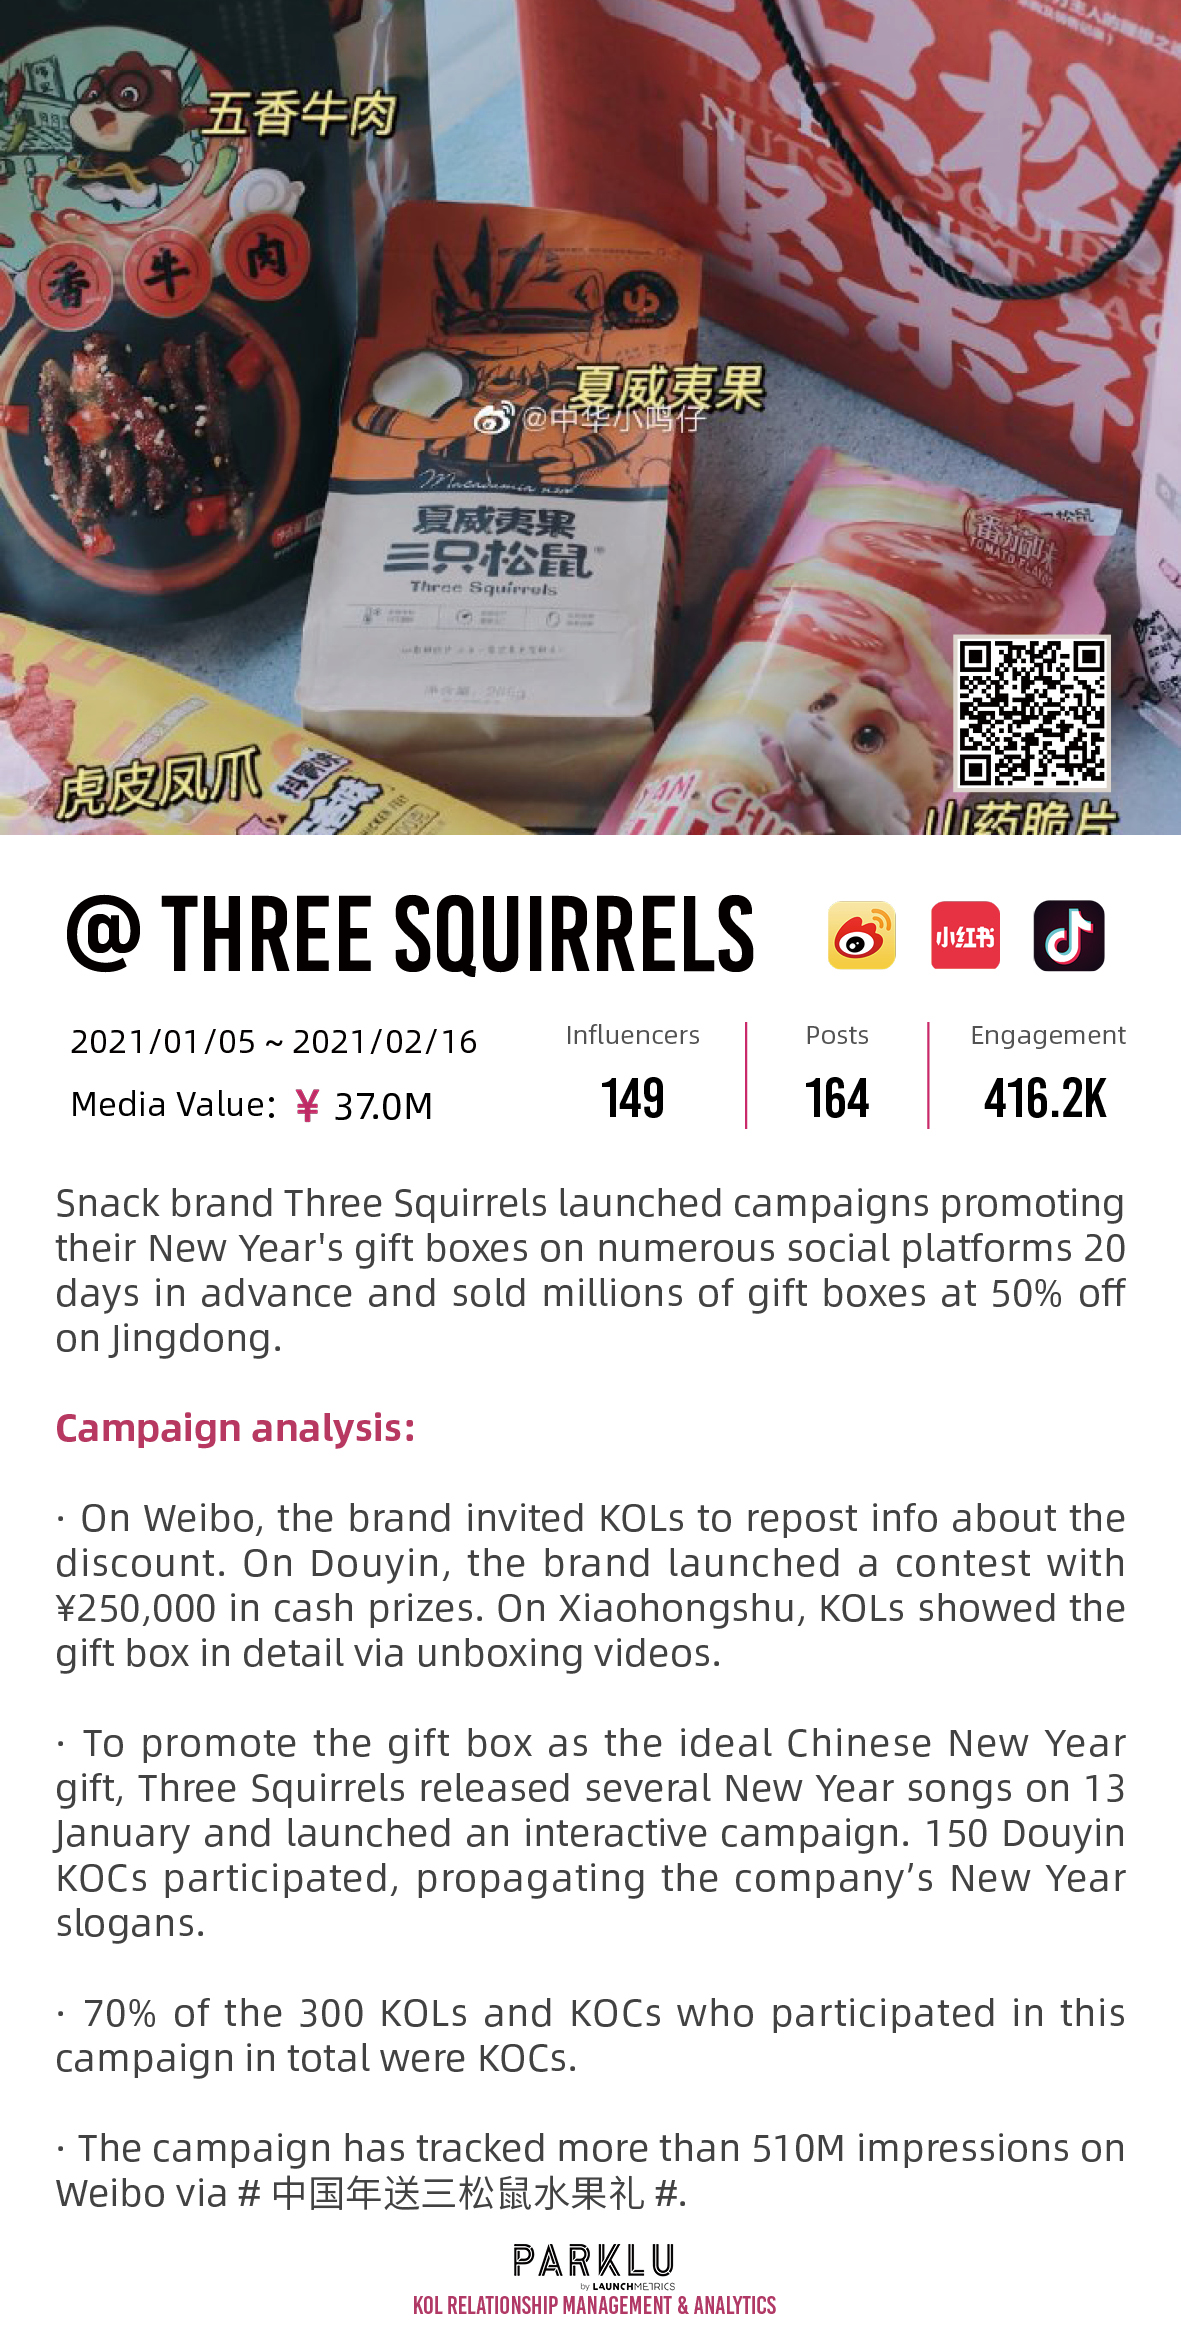 Three Squirrels New Year's Gift Boxes